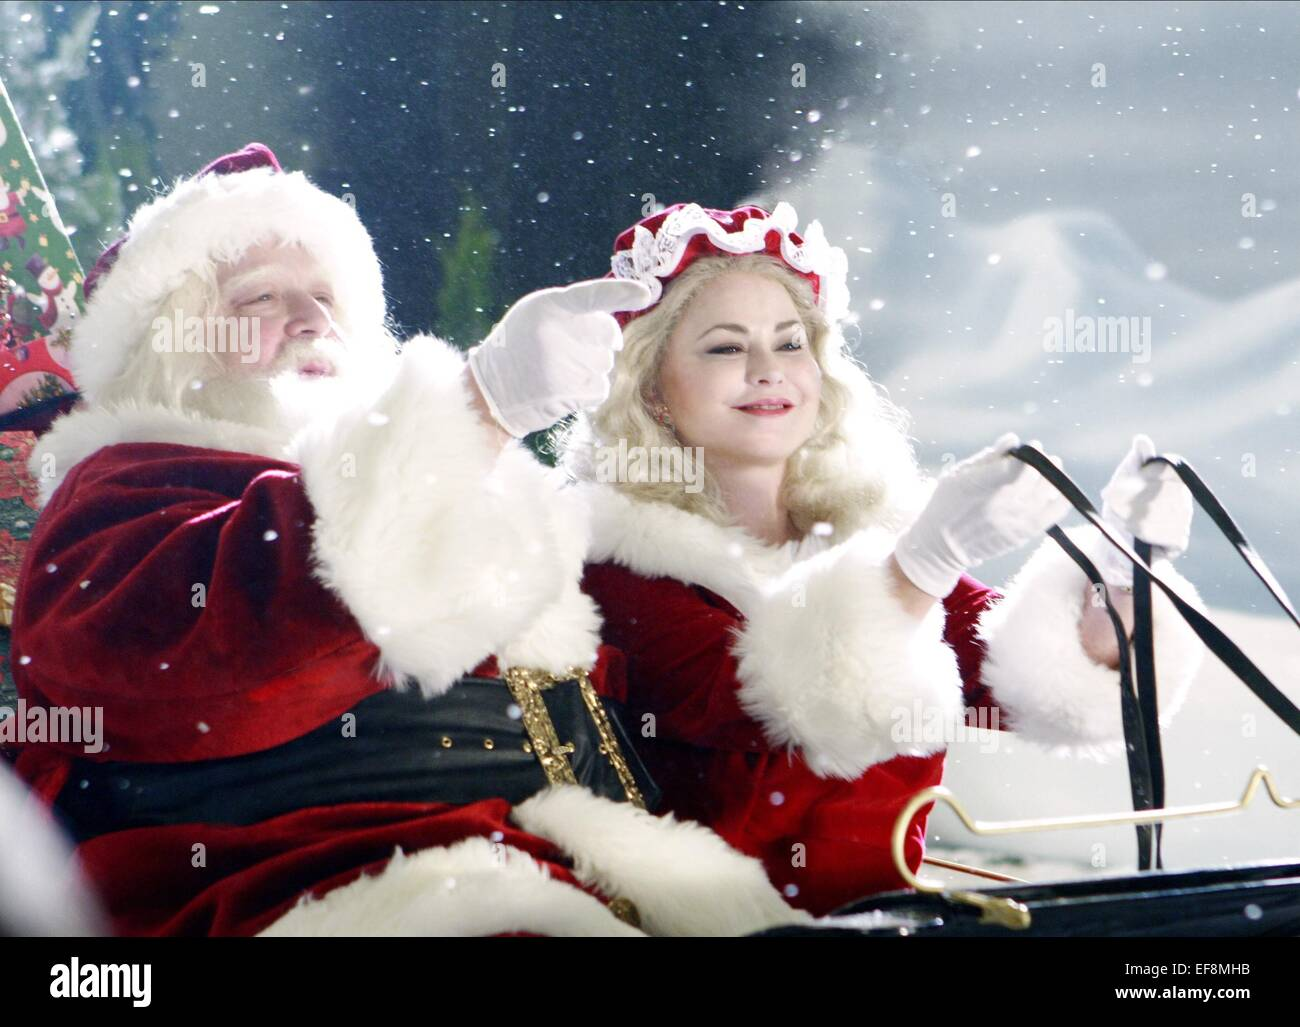 John Goodman Santa Stock Photos & John Goodman Santa Stock Images ...